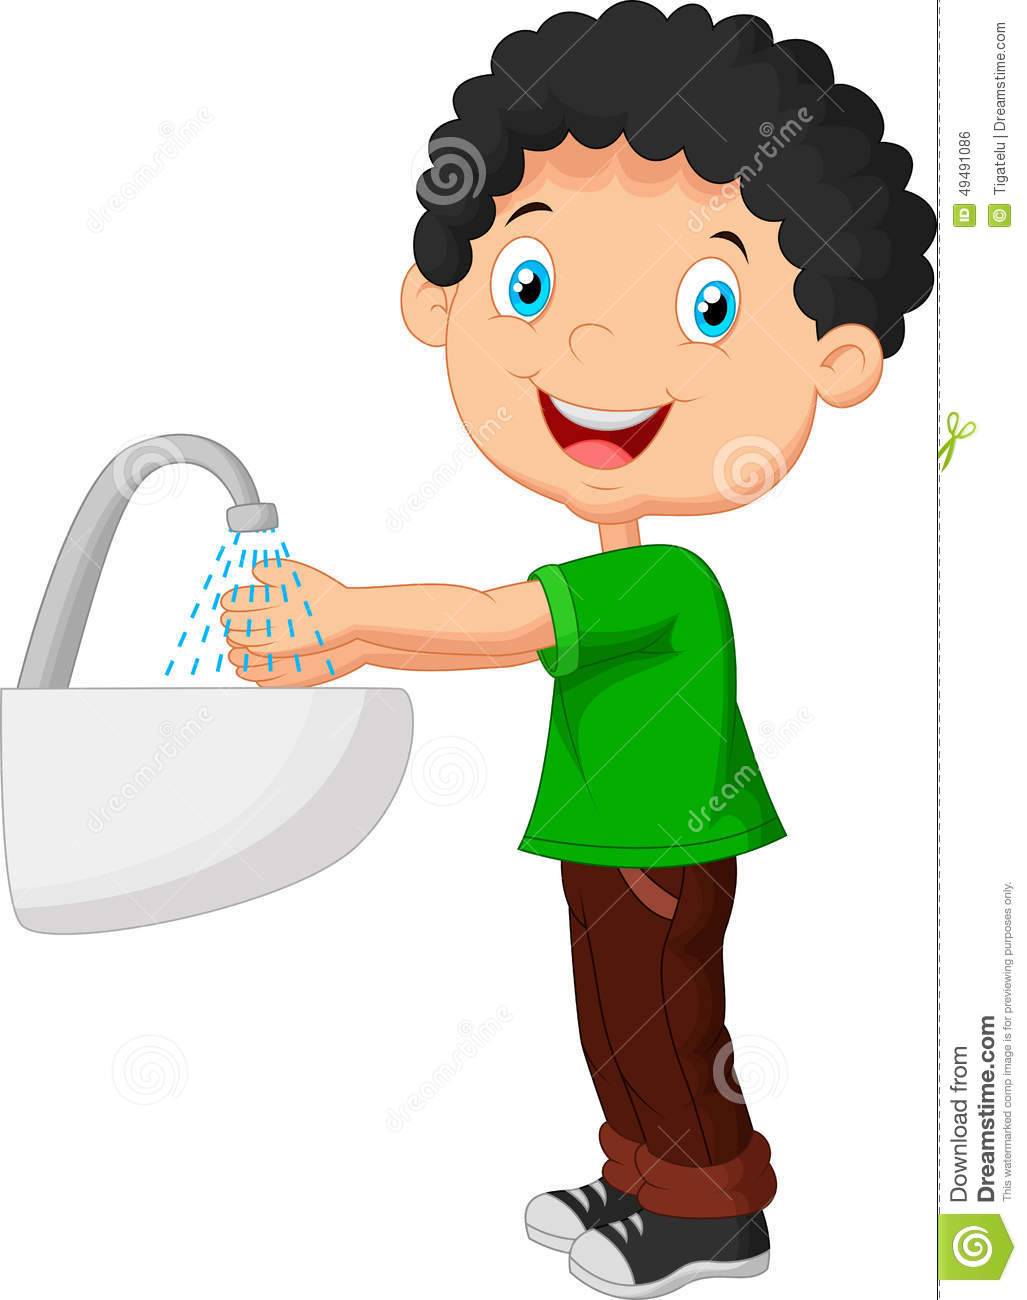 A little girl washing her hands for dinner clipart image freeuse download A little girl washing her hands for dinner clipart, Free Download ... image freeuse download